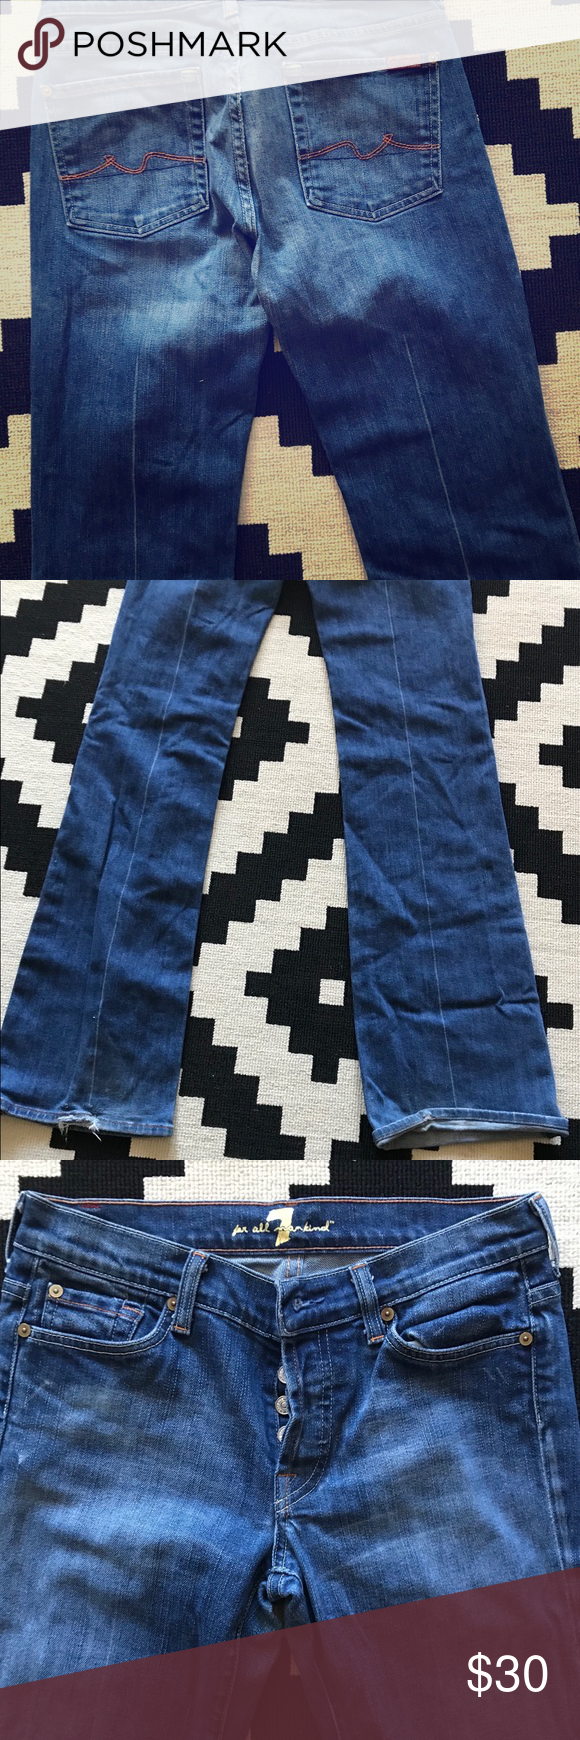 Seven Mankind Jeans Flare form fitting denim 7 jeans! I've had these jeans for a few years so there are some snags on the bottom. I've included the snags in the picture. 7 For All Mankind Jeans Boot Cut